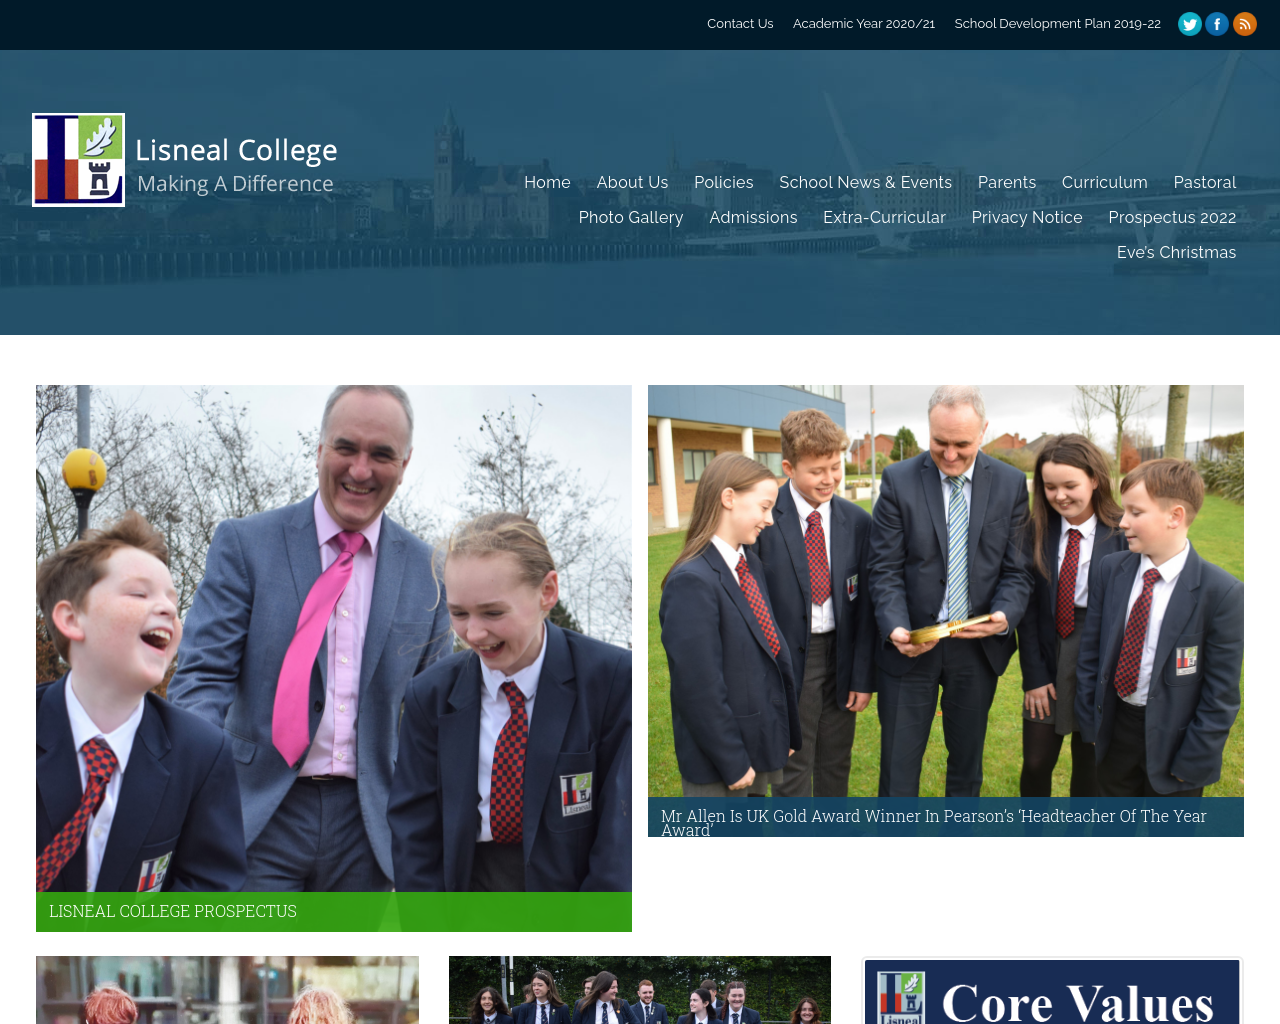 Lisneal College Website